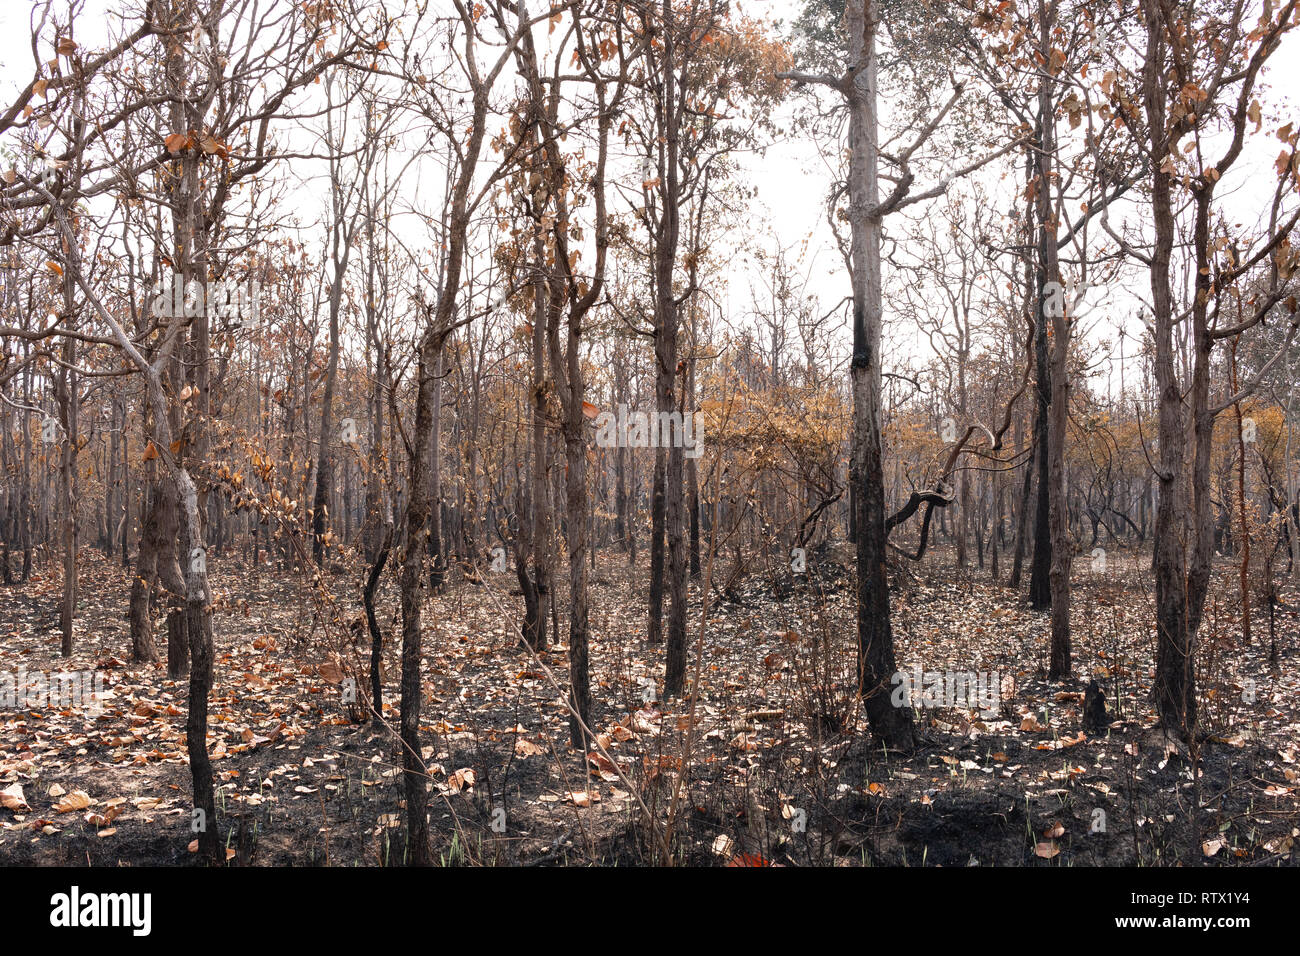 An area of forest that has been burnt by a forest fire - Stock Image